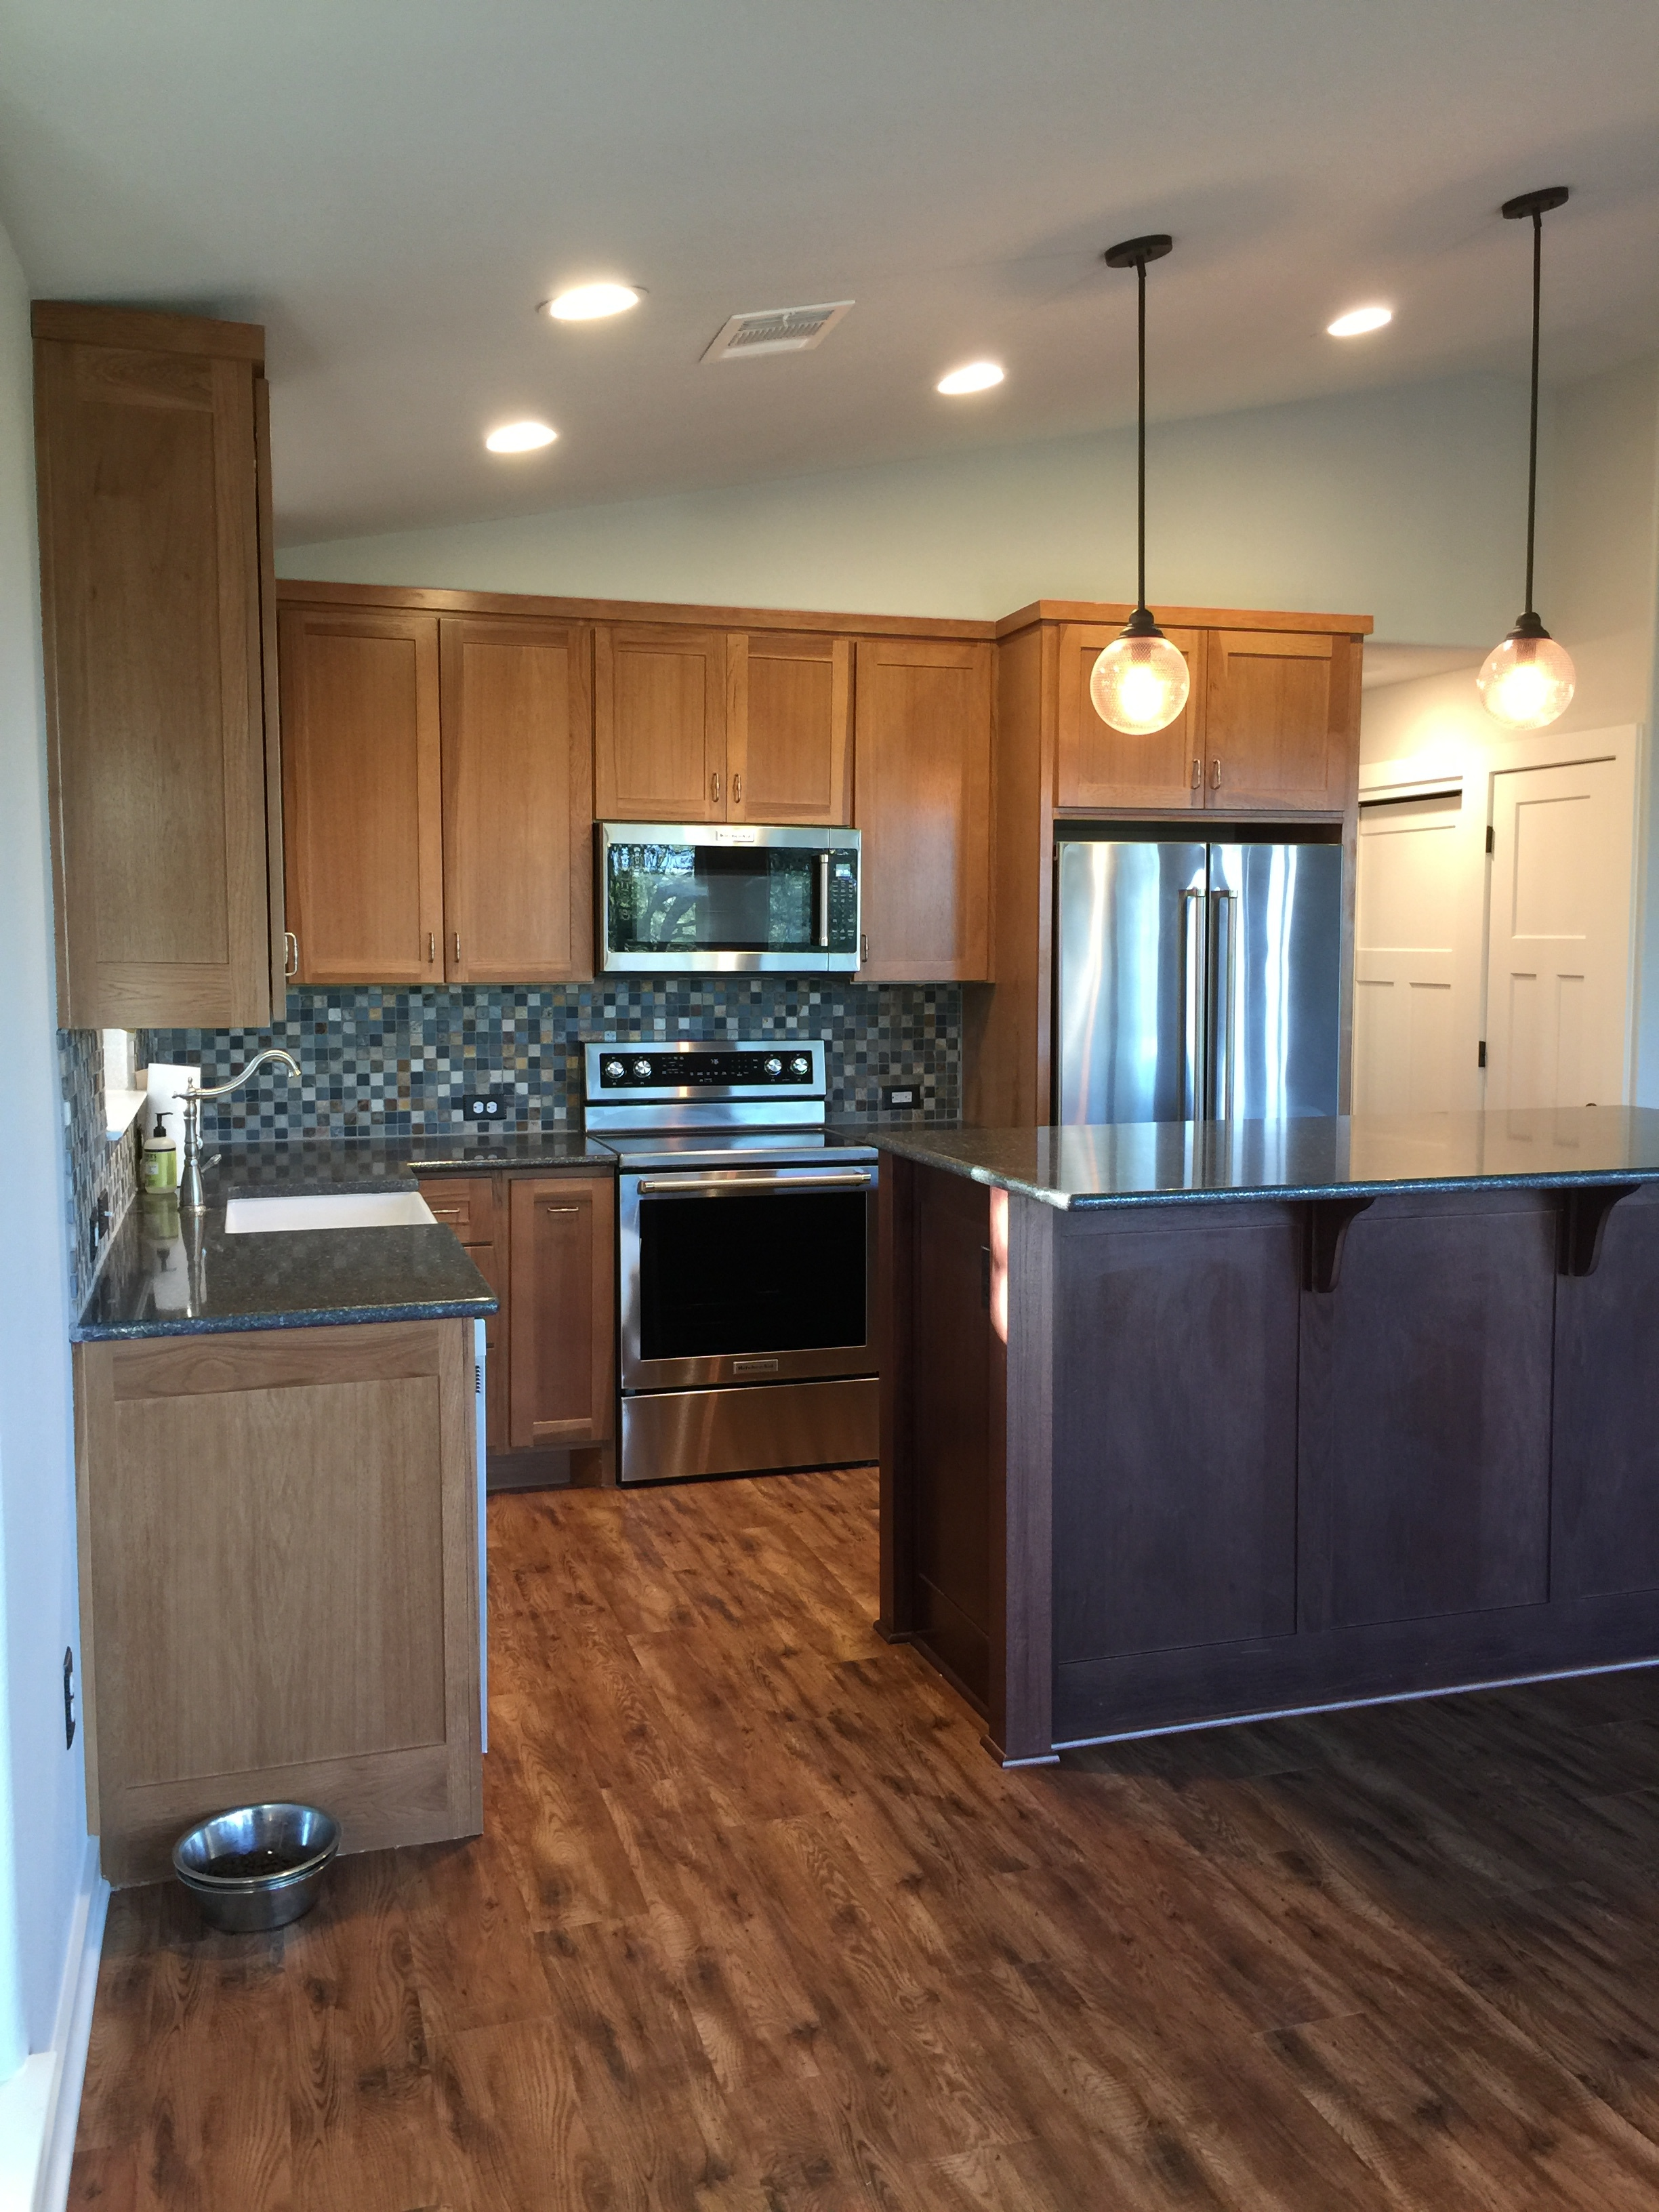 910 PLL - Finished Kitchen 1.JPG